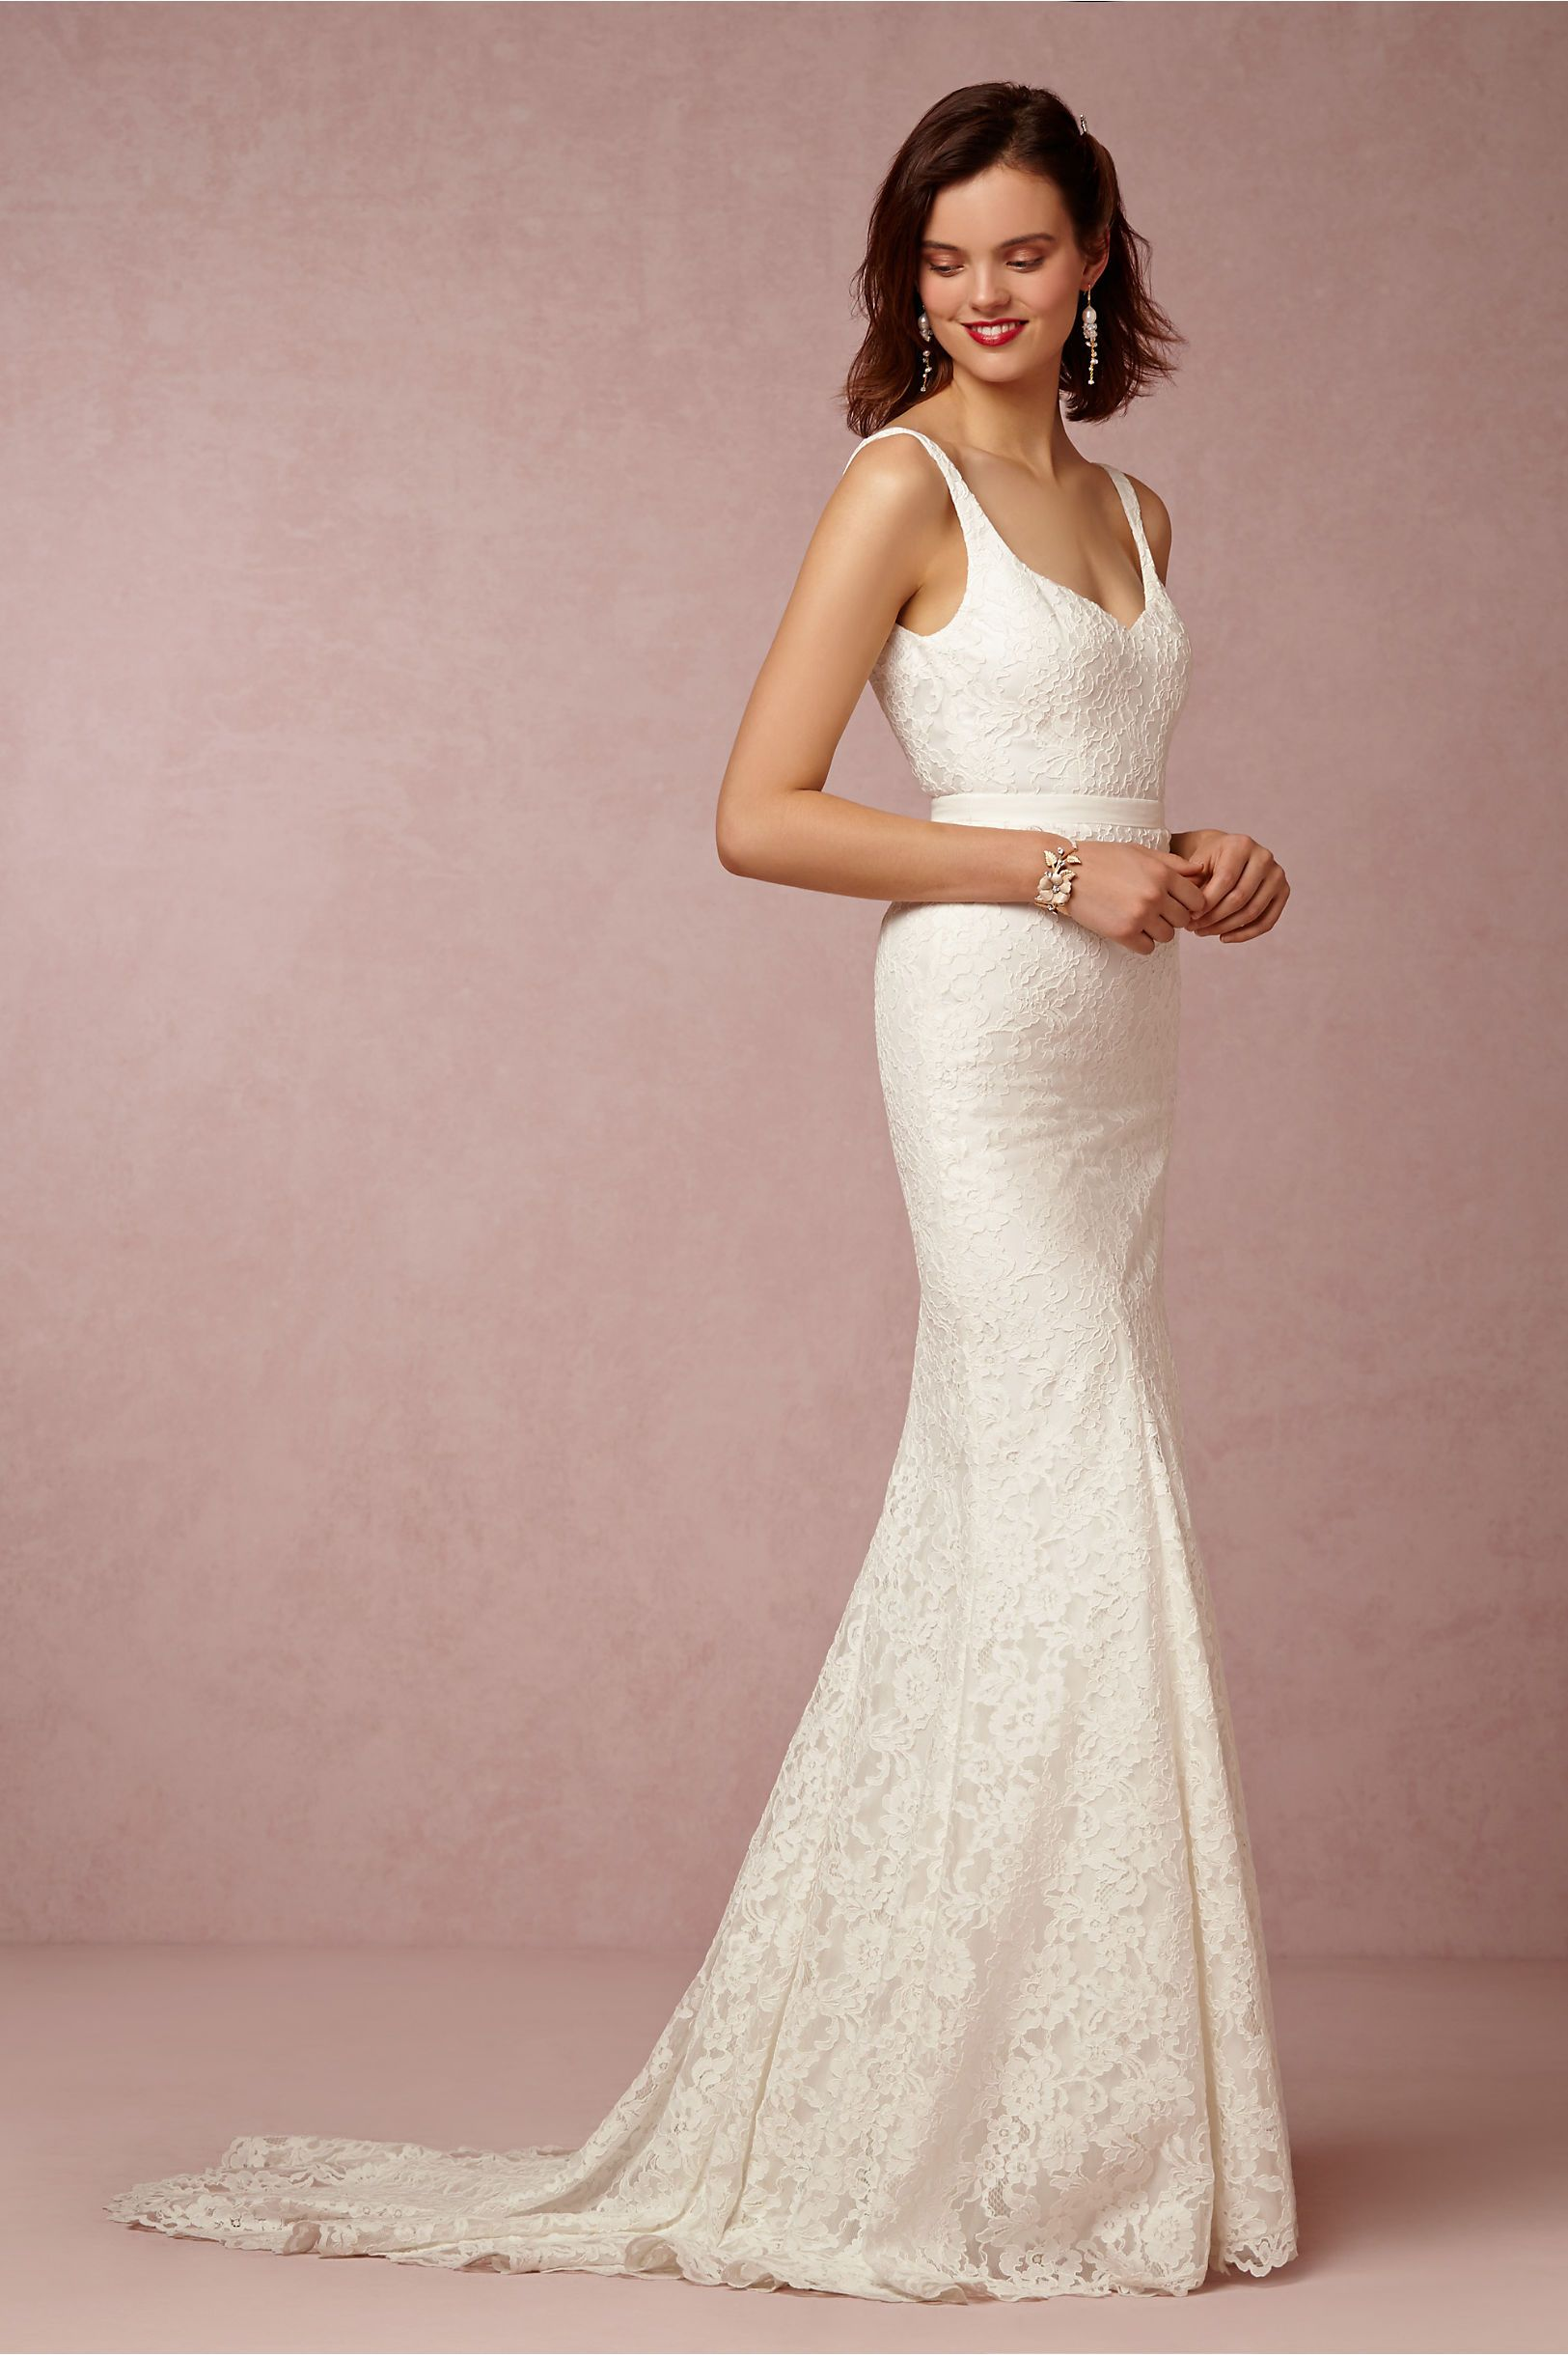 Sleek Classic Lace Wedding Dress by Nicole Miller for BHLDN   Be ...